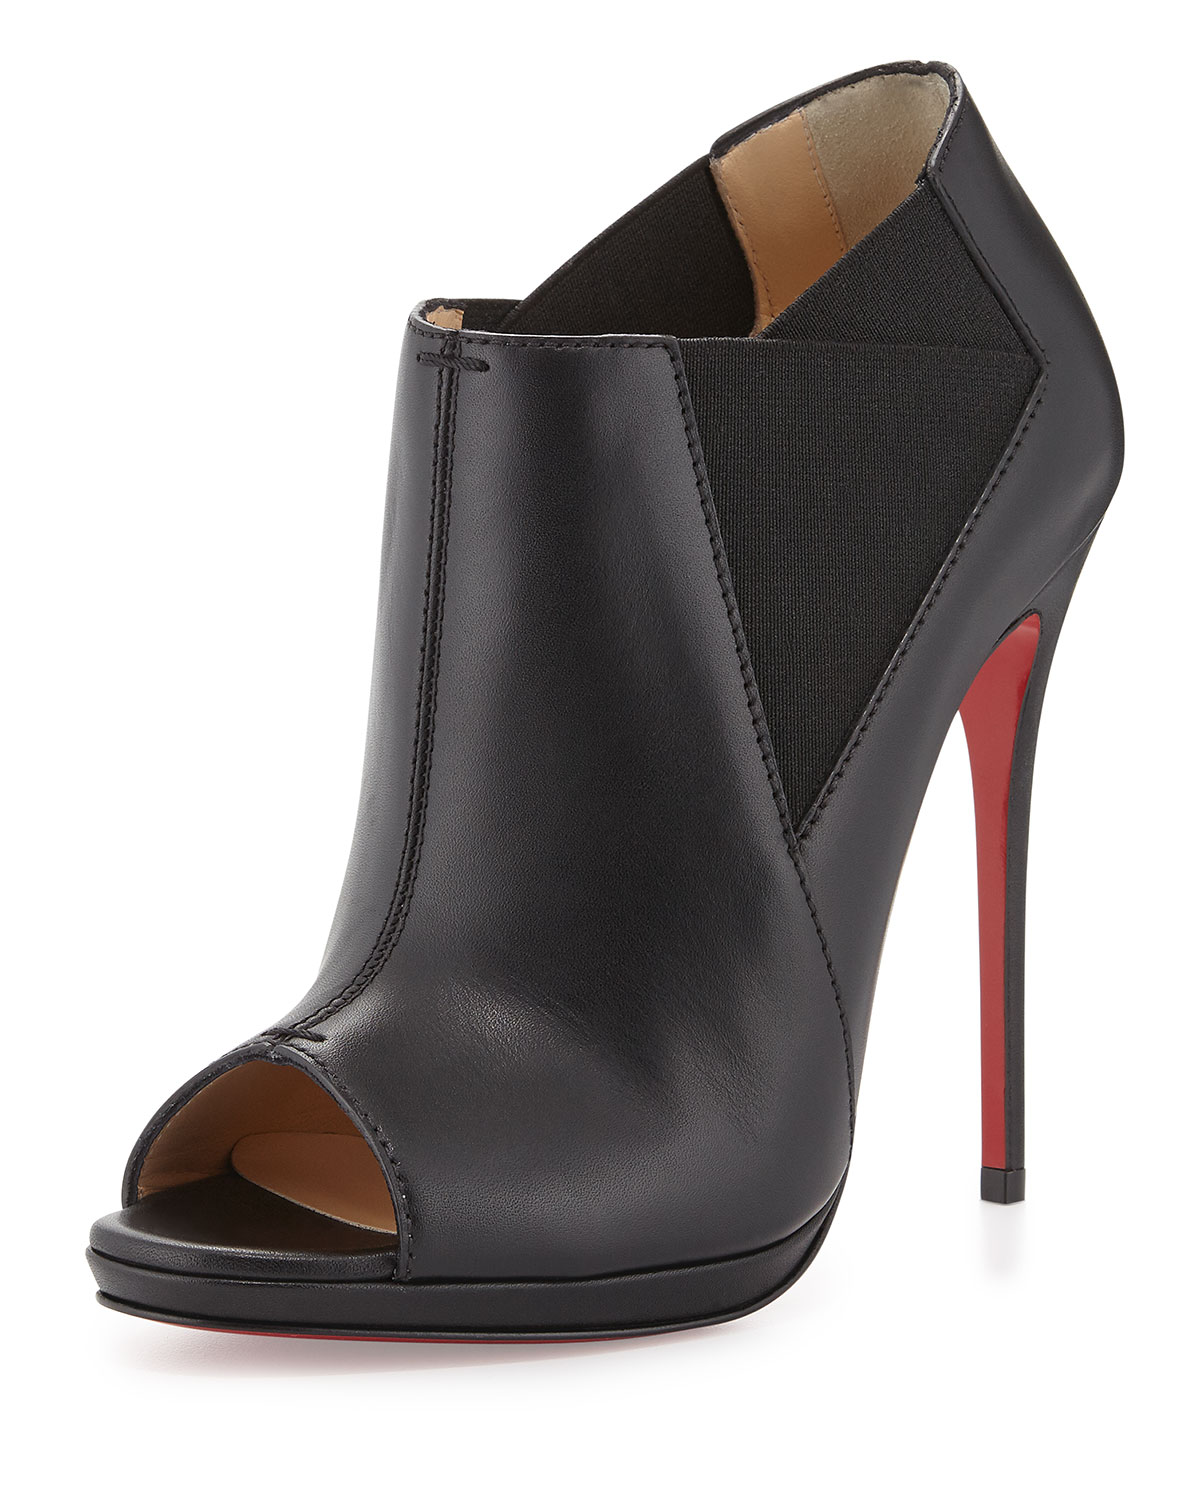 4194d646873 Christian Louboutin Bootstagram Red Sole Peep-Toe Bootie